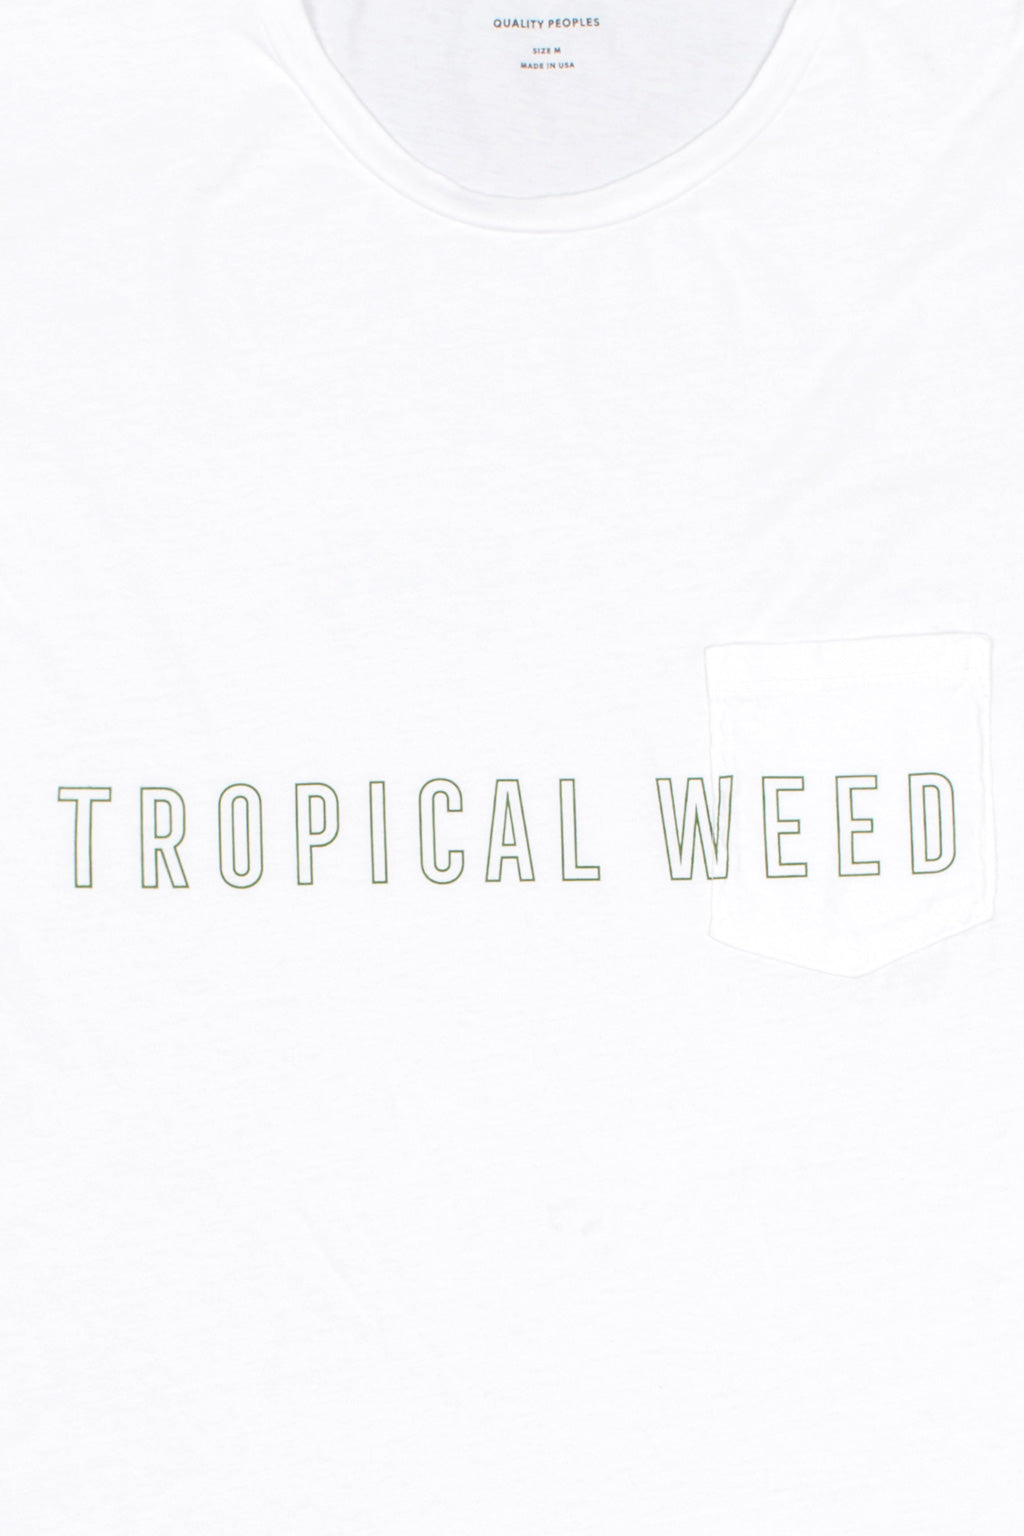 Quality Peoples Unisex Pocket T-Shirt Tropical Weed White Front Detail